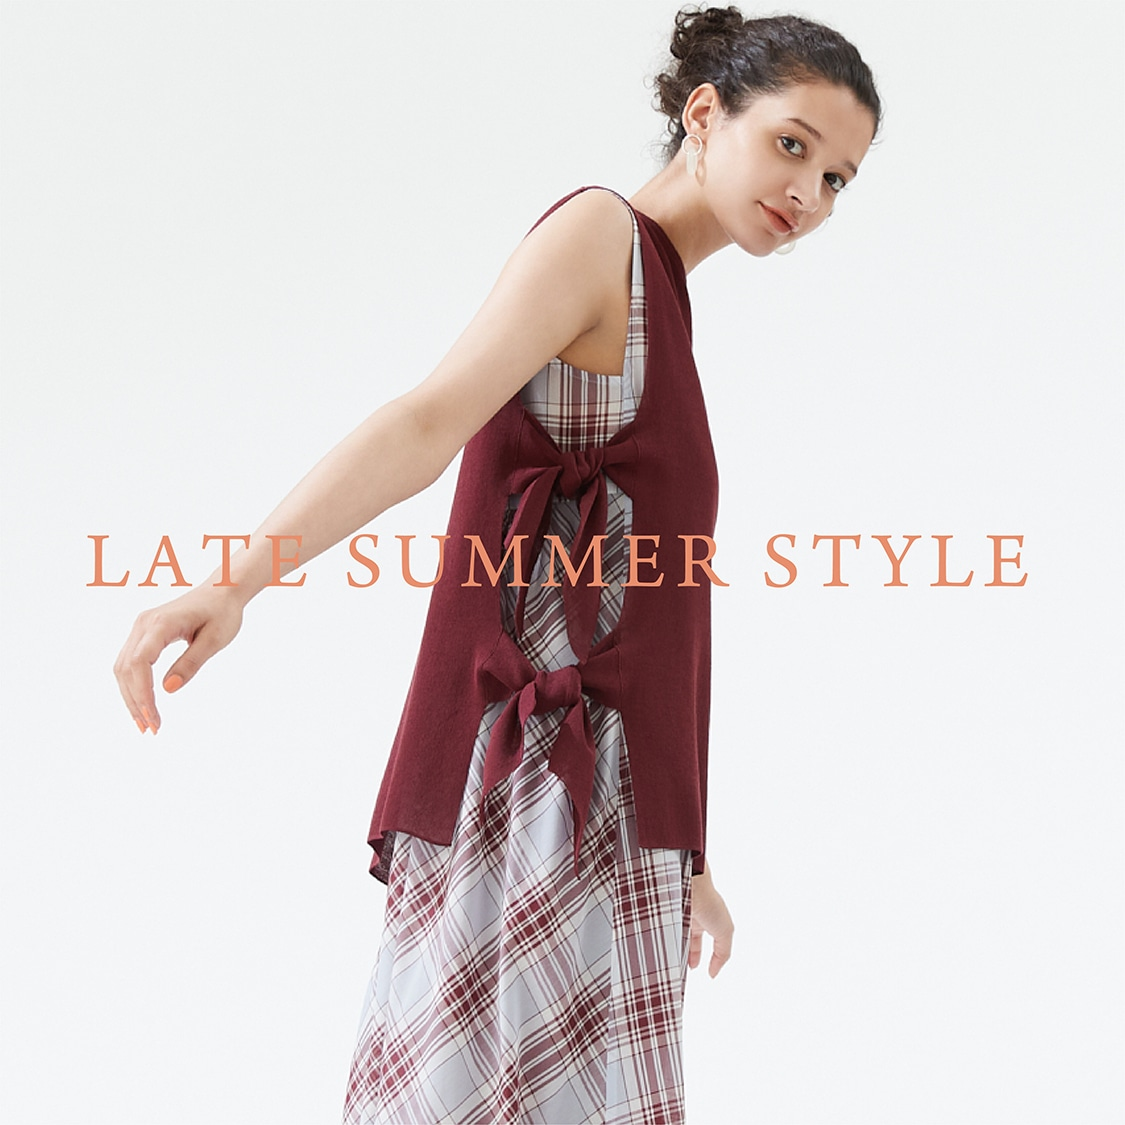 LATE SUMMER STYLE